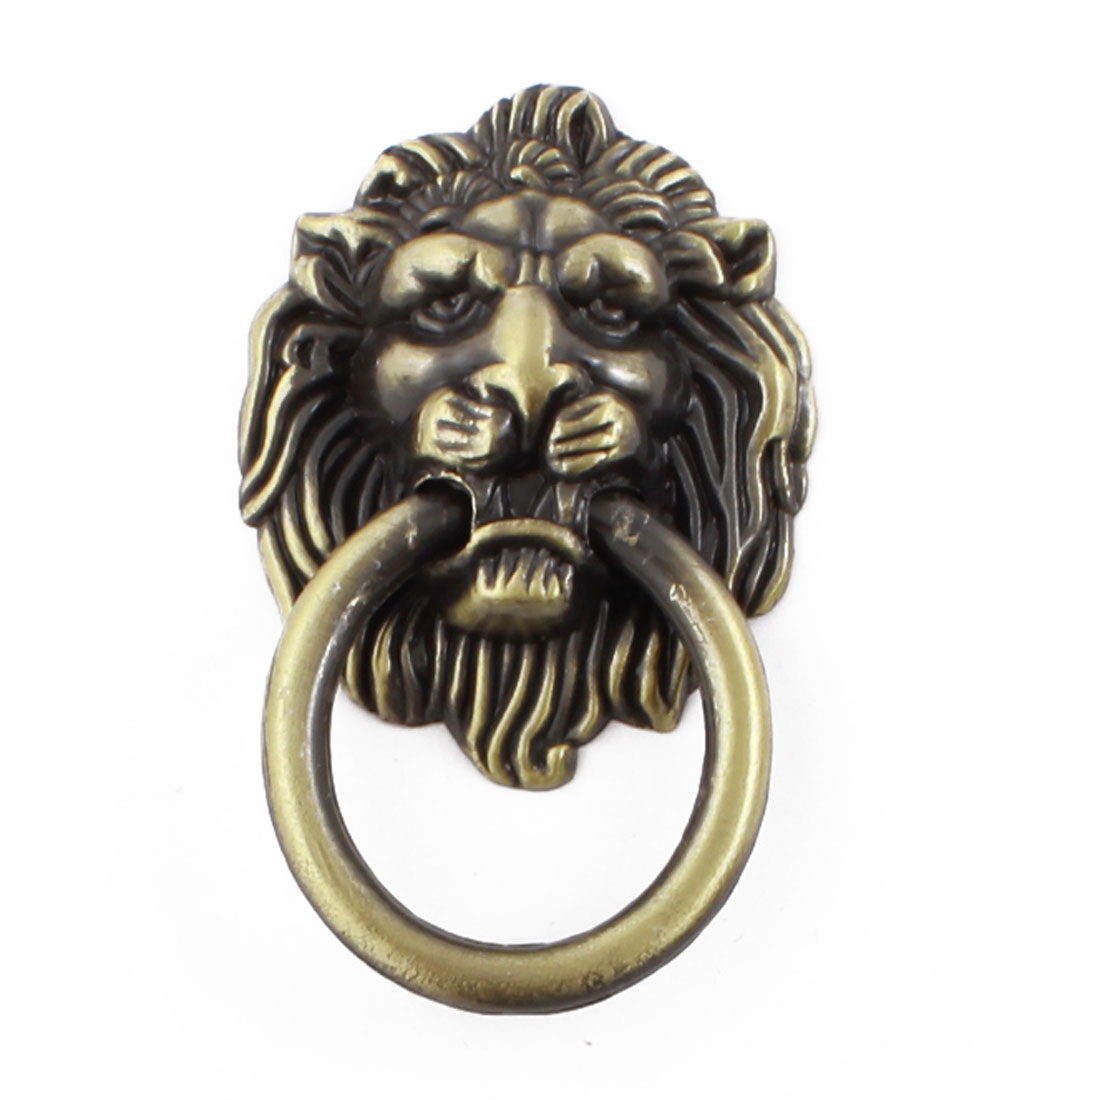 Bronze Tone Lion Head Shape Antique Style Cabinet Pull Handle Knob